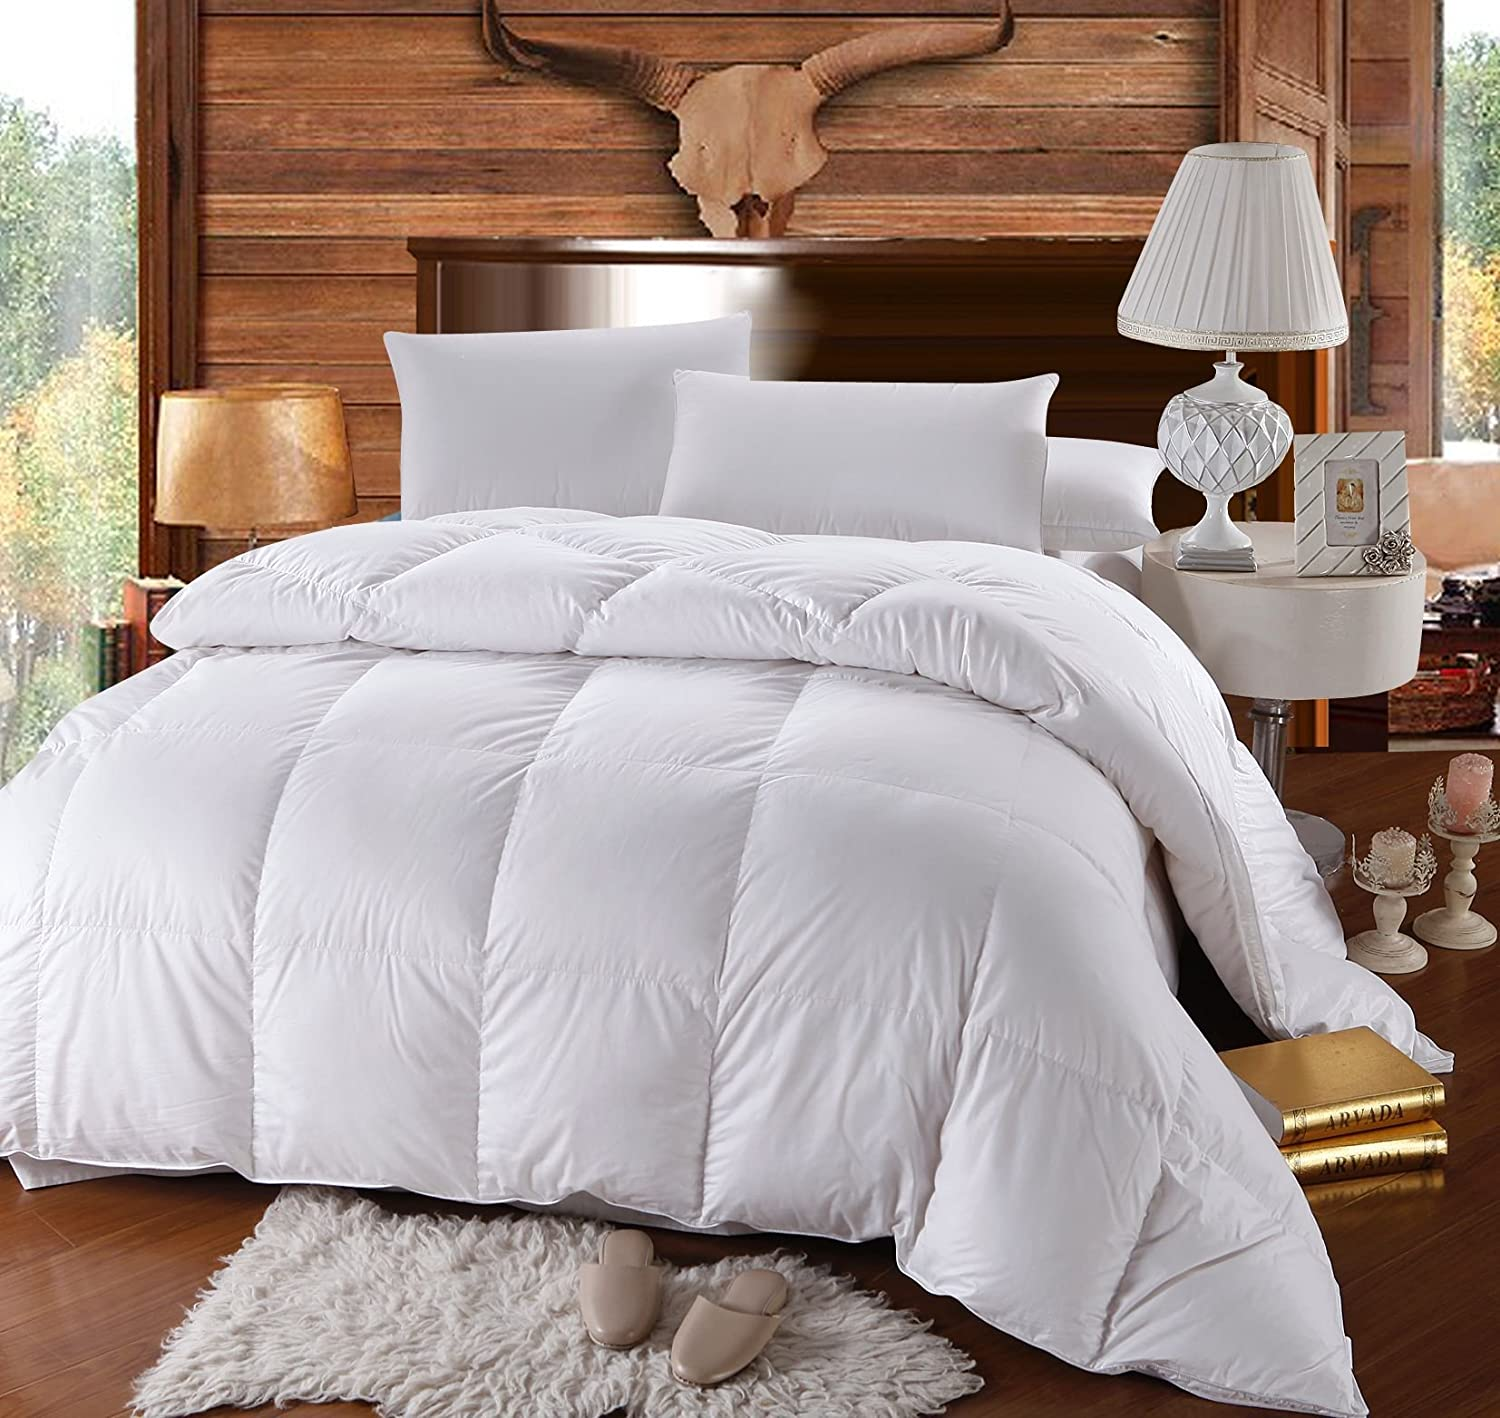 duvet shell comforters power all goose insert white king cotton fill down sheone allergenic shop proof tabs lightweight seasons with solid comforter hypo